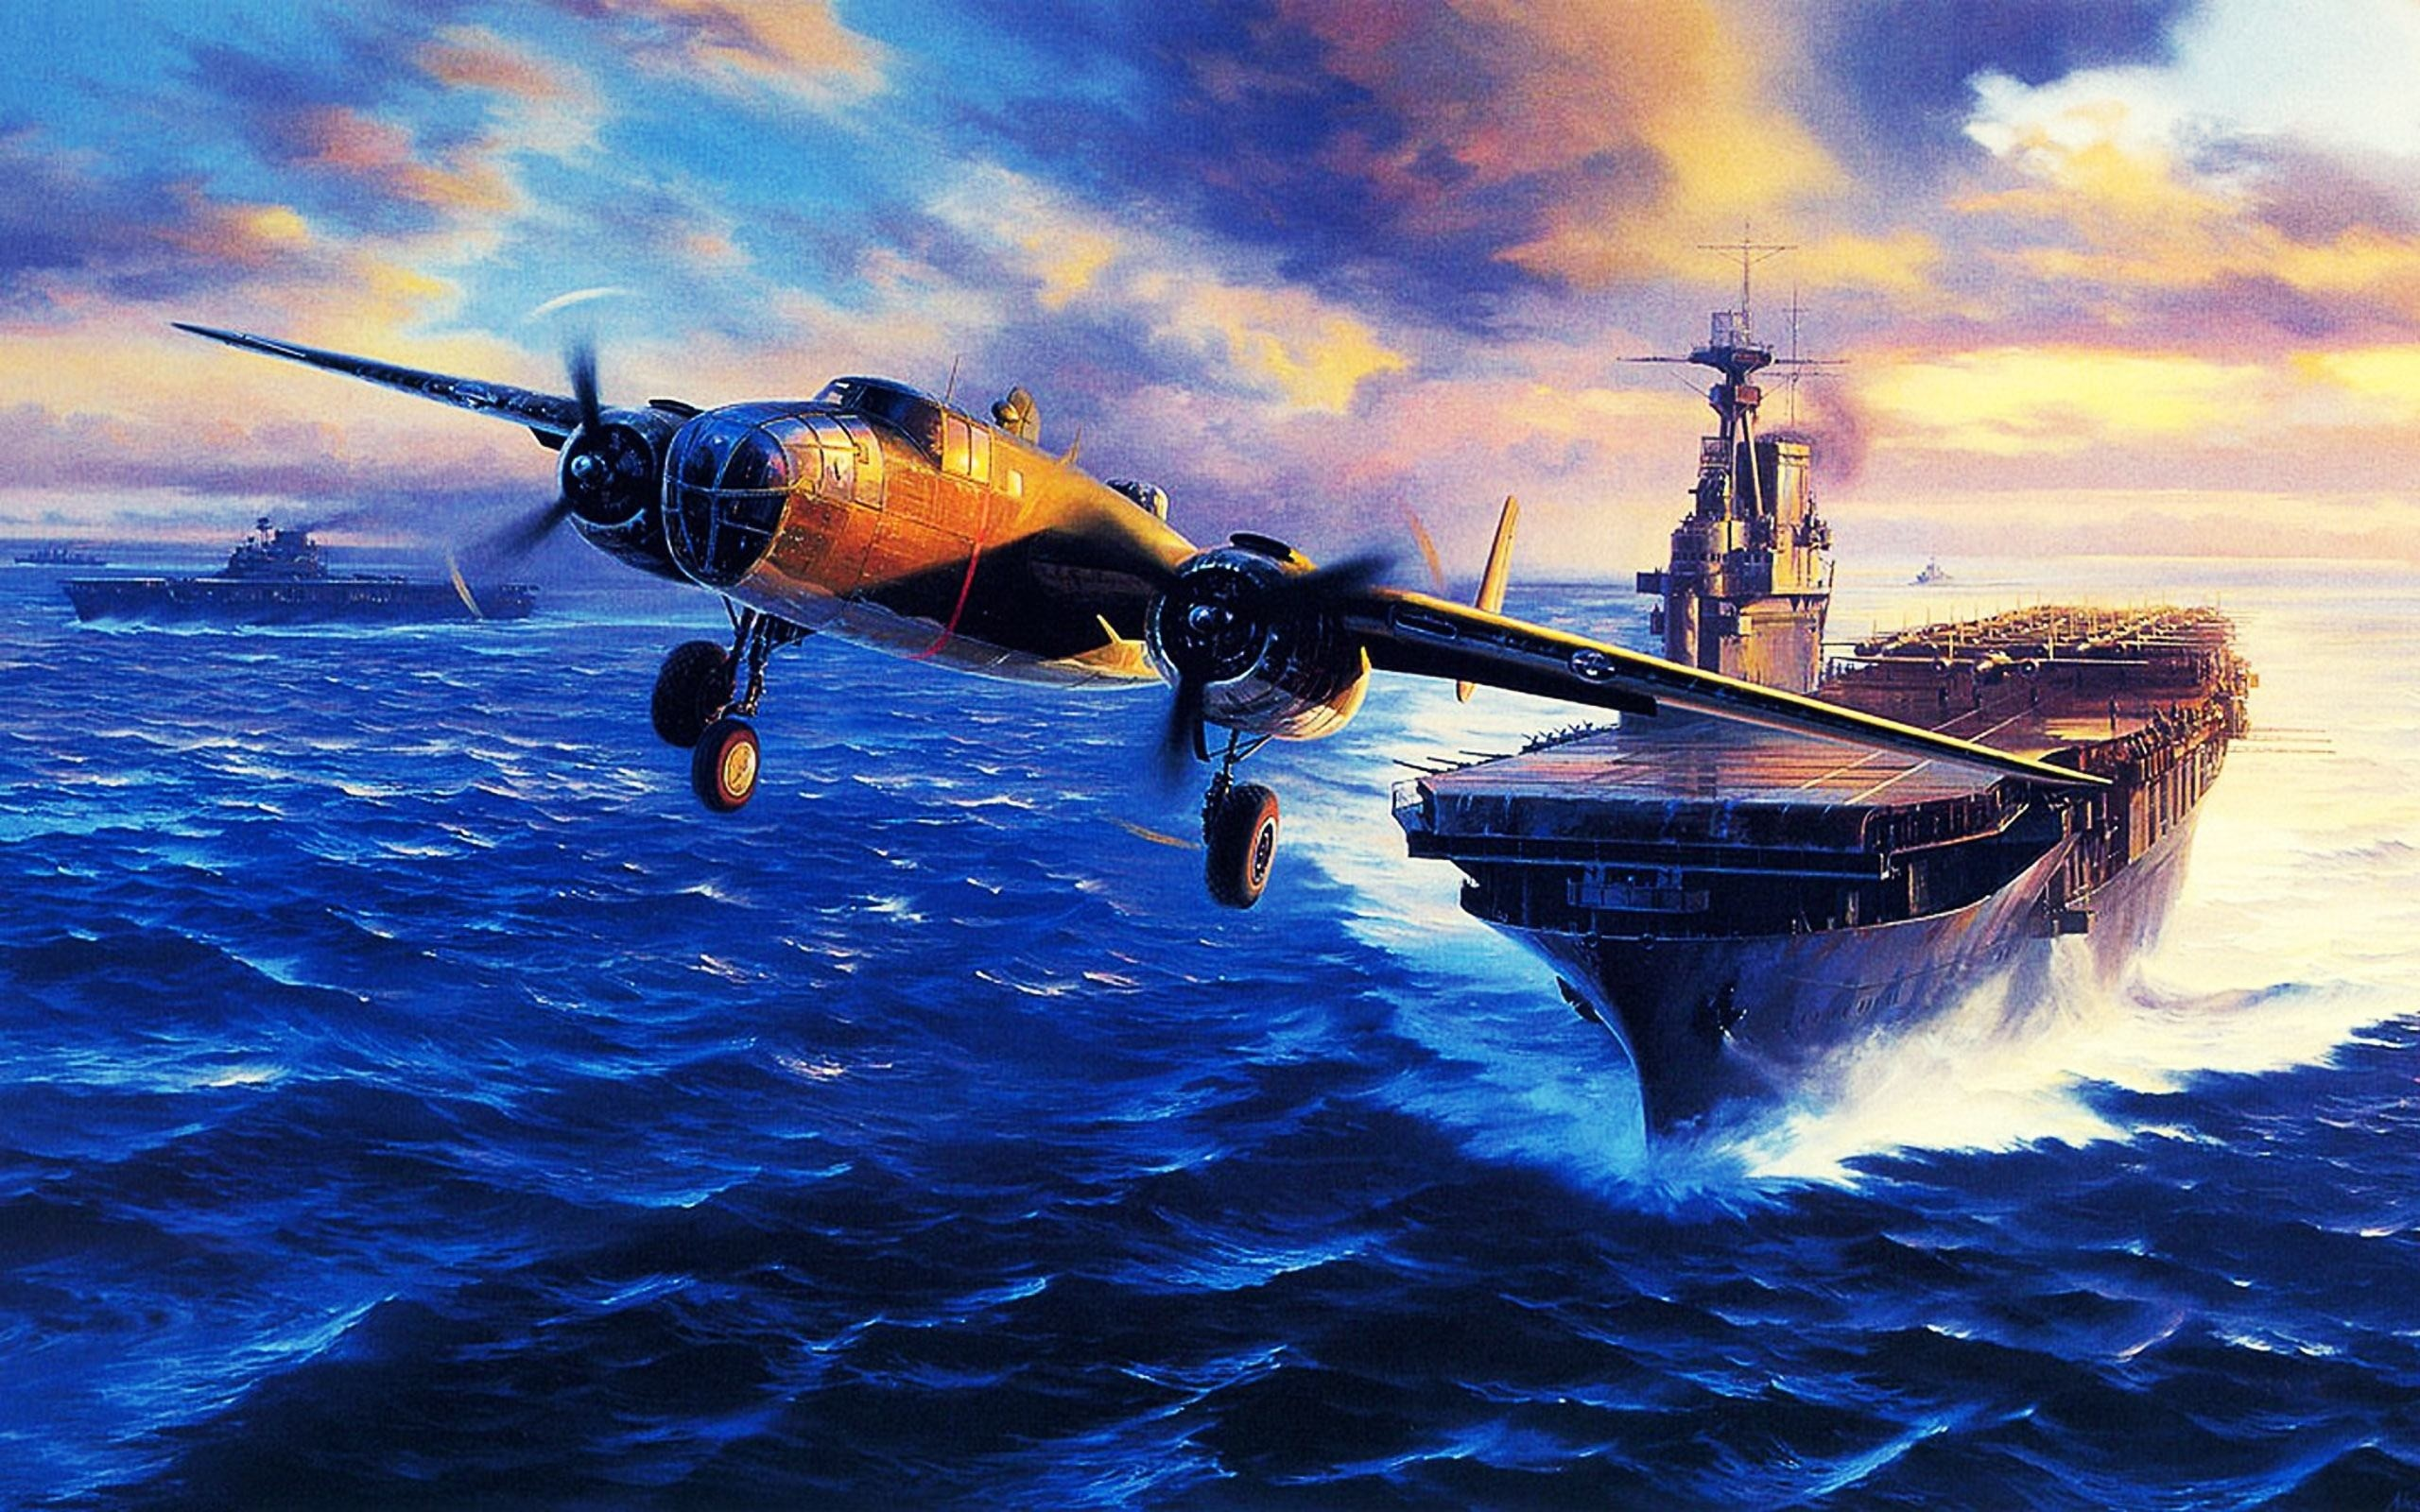 Wallpapers Backgrounds – B25 Mitchell Heavenly Body wallpapers